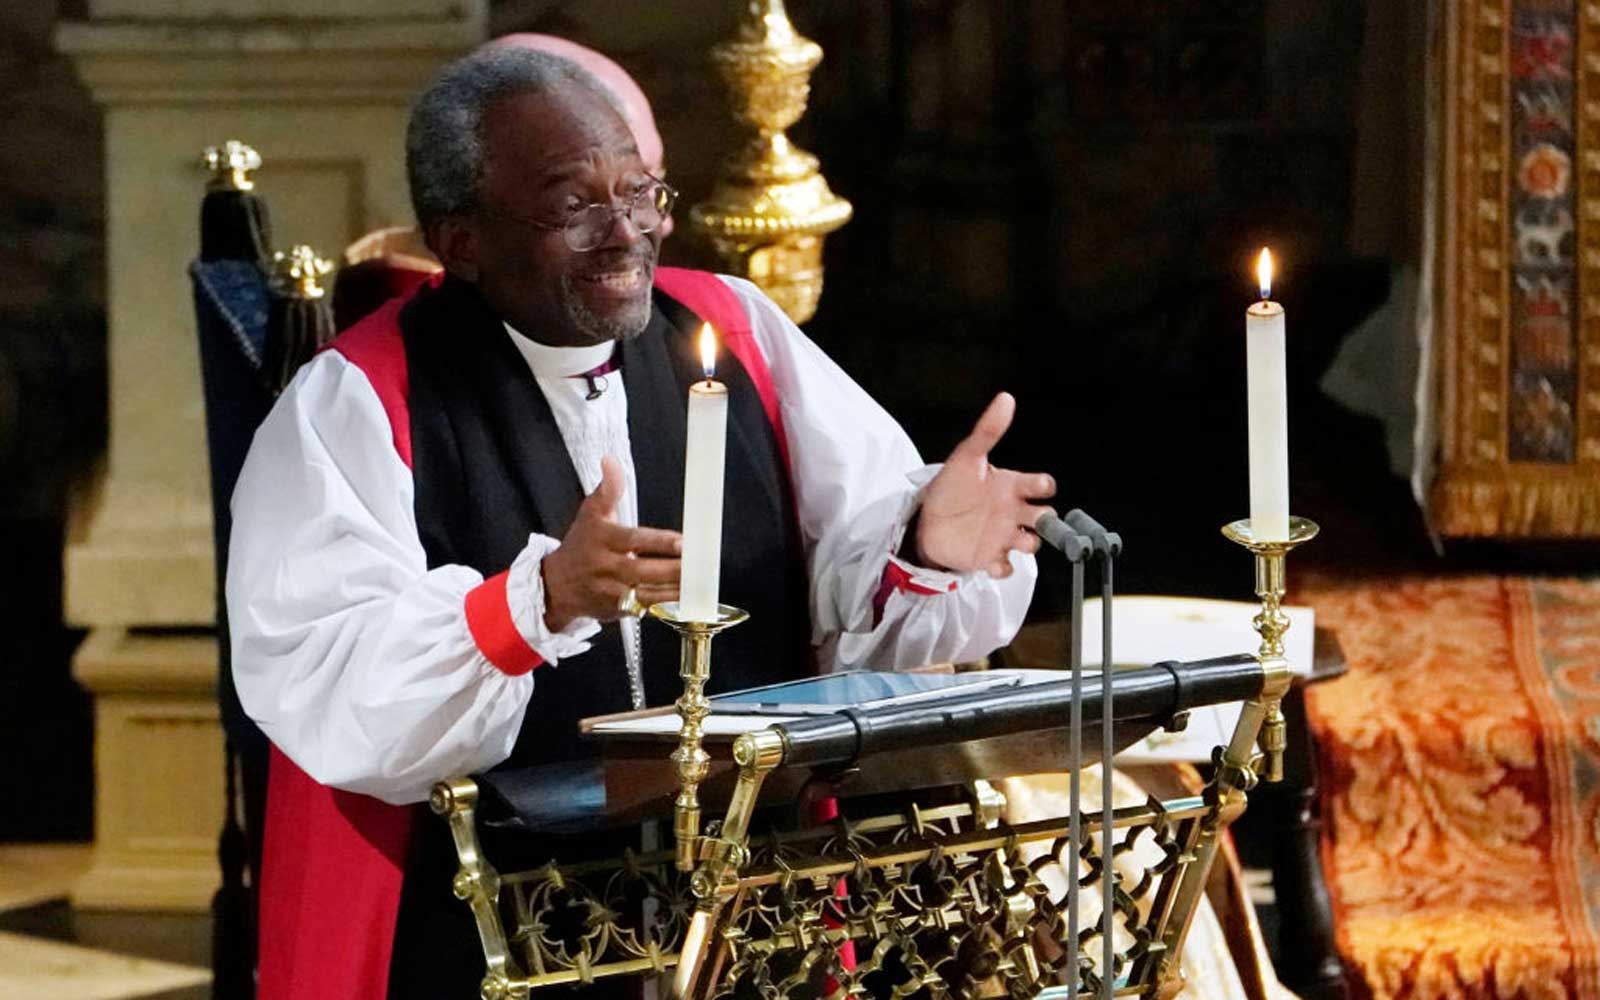 Bishop Michael Bruce Curry gives a reading during the wedding ceremony of Britain's Prince Harry, Duke of Sussex and US actress Meghan Markle in St George's Chapel, Windsor Castle